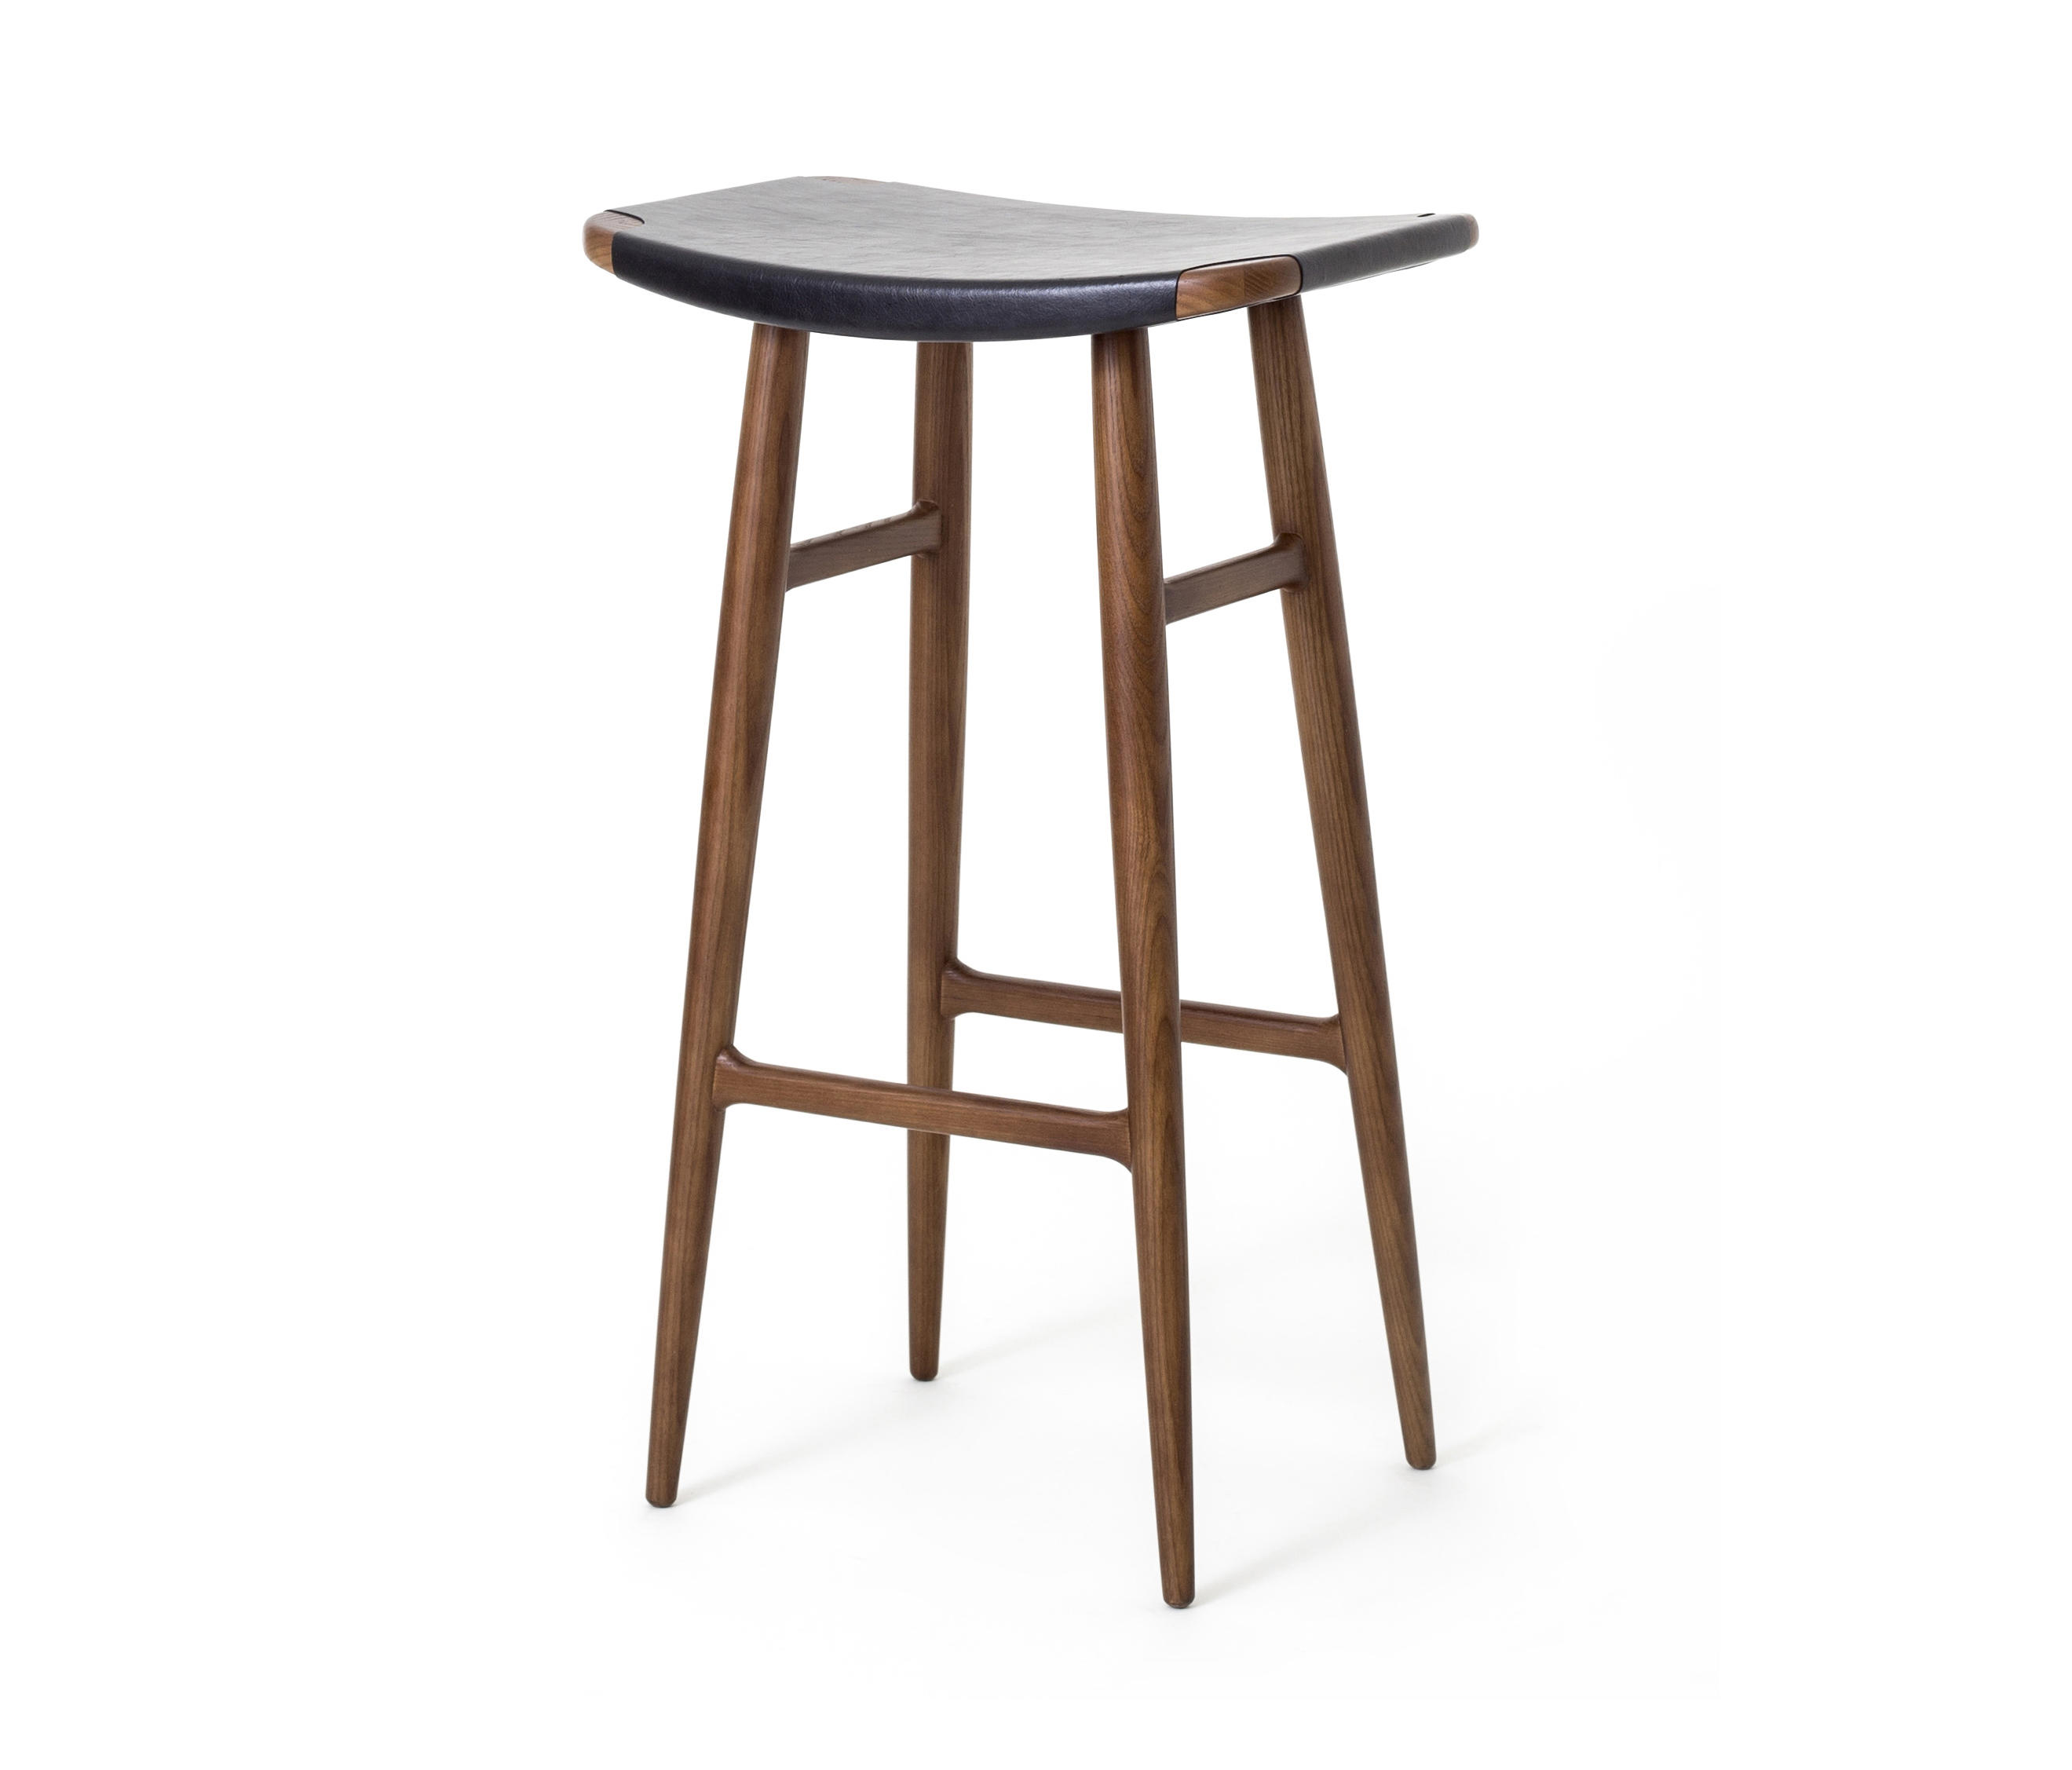 Freja Bar Stool Sh750 Leather Seat Stools From Stellar